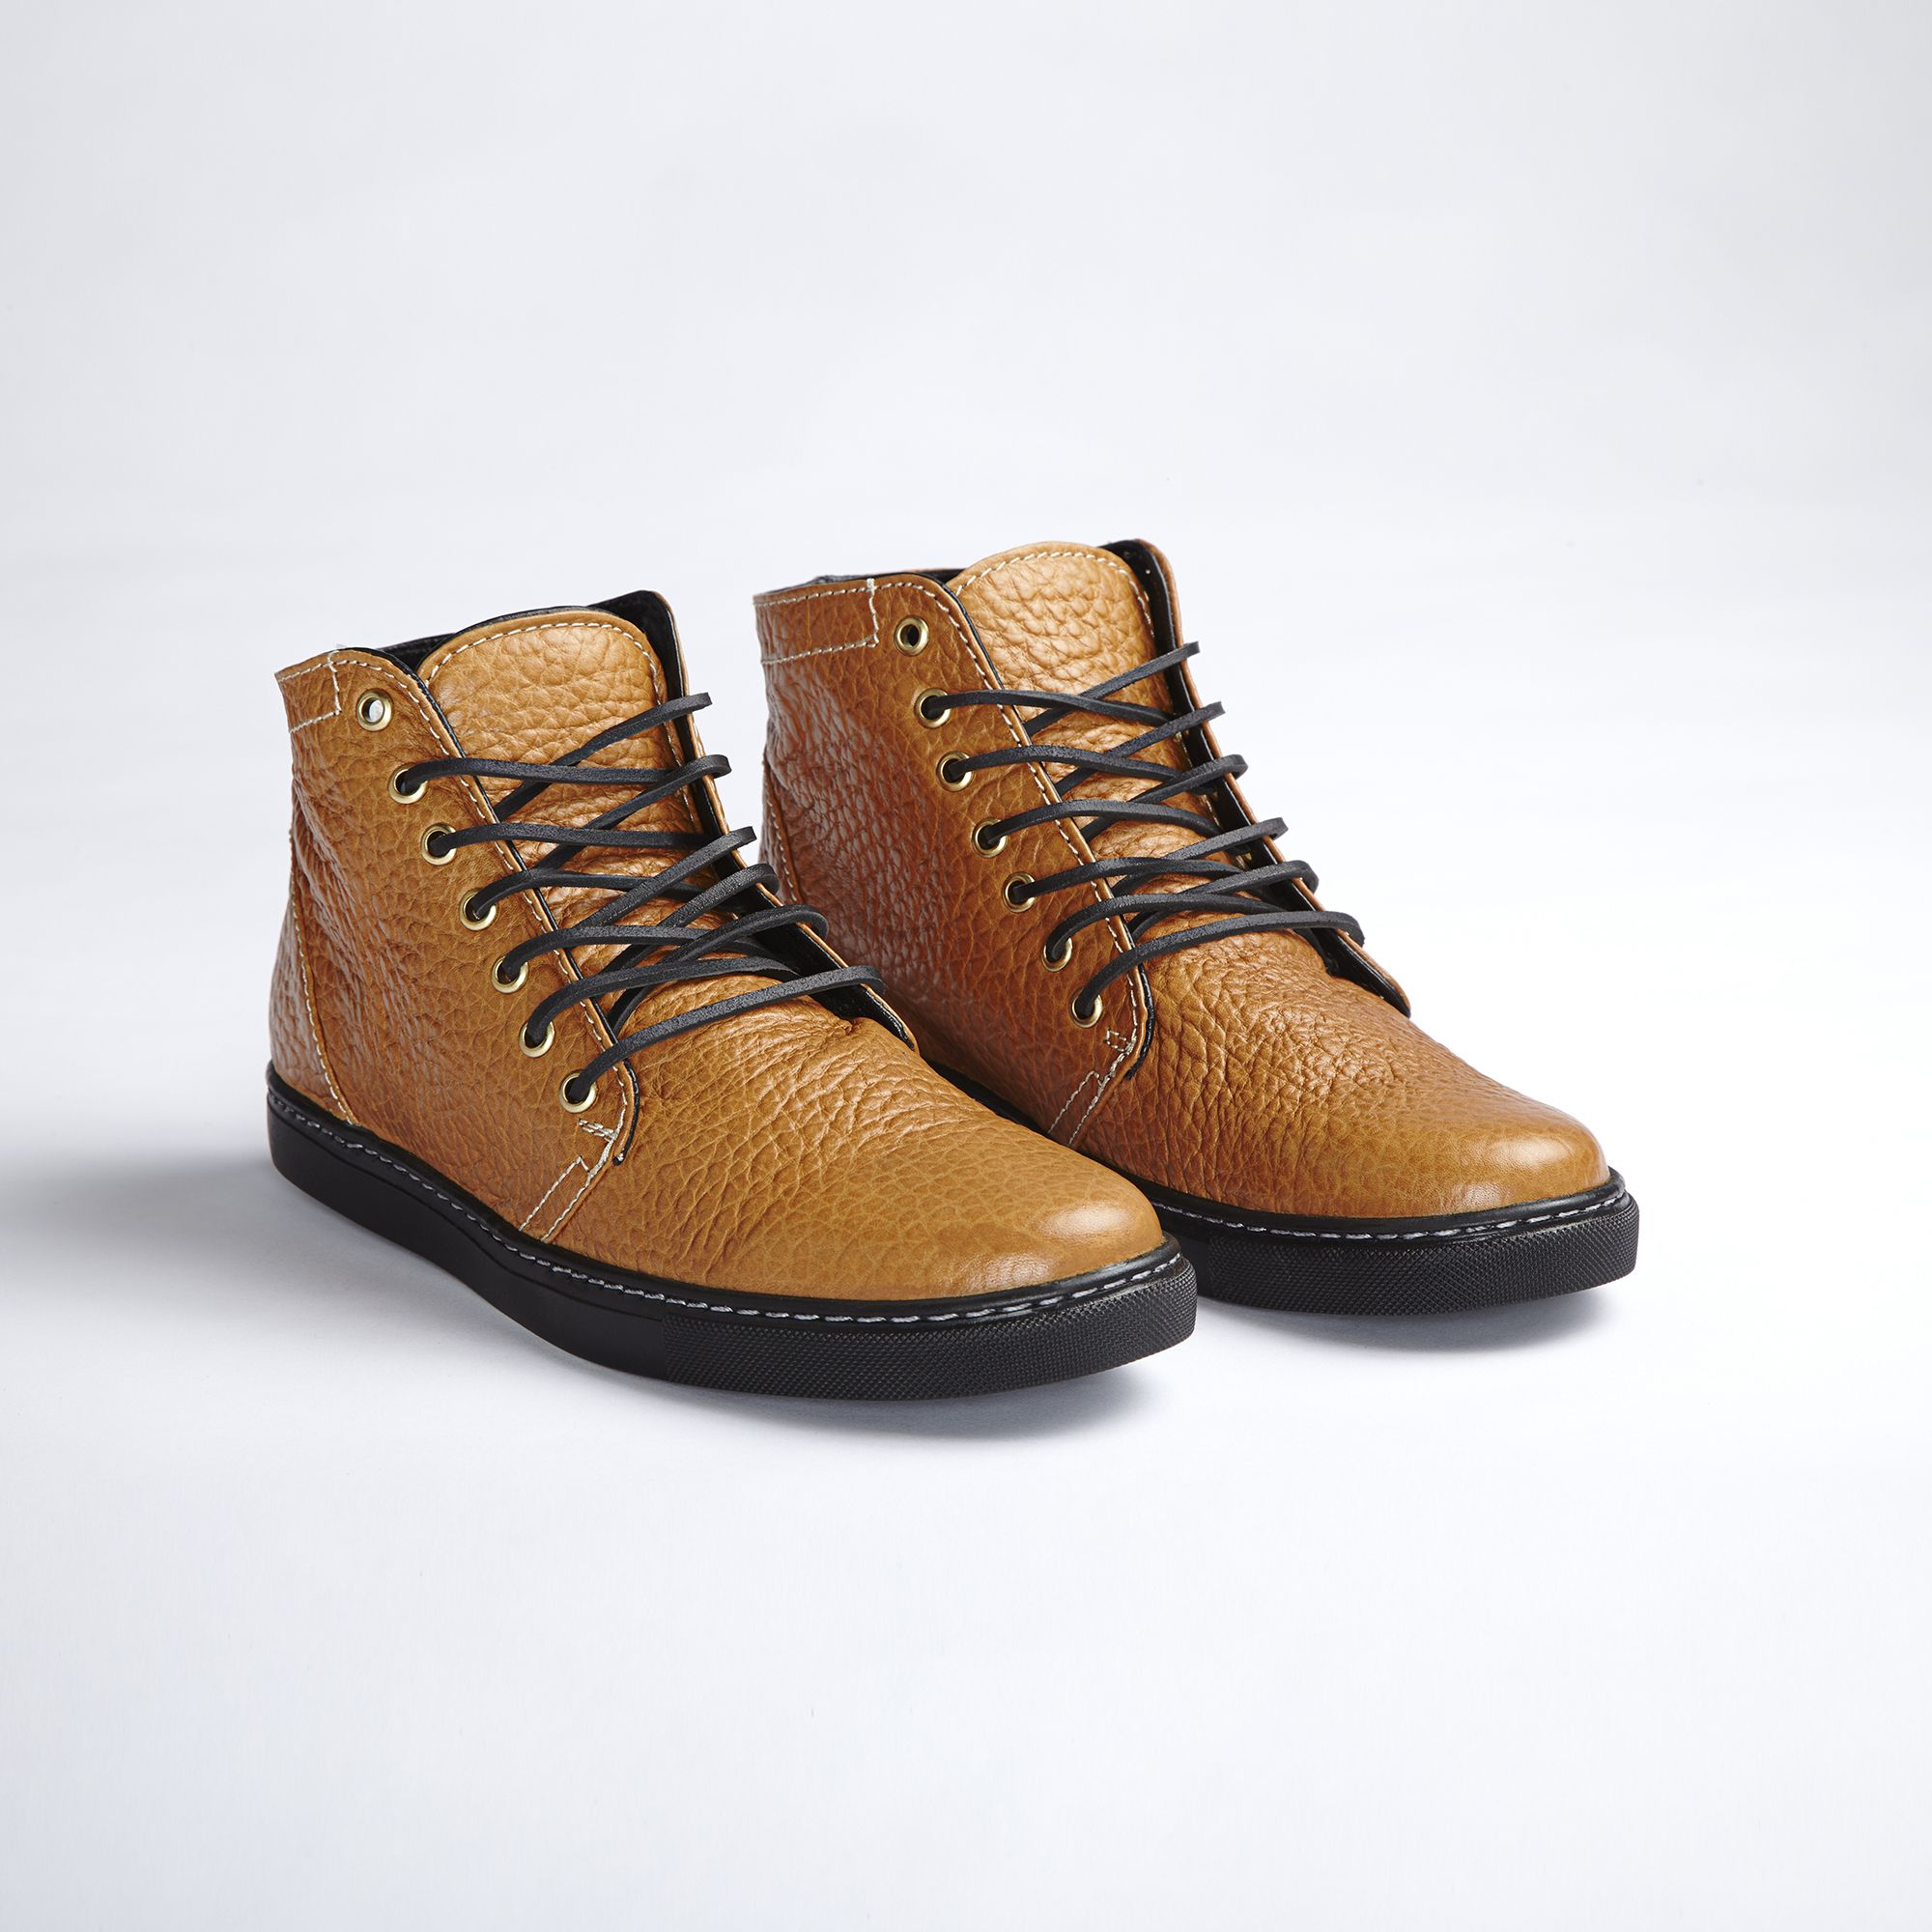 Whiskey high / black soles $275 | Fall shoes, Boots ...